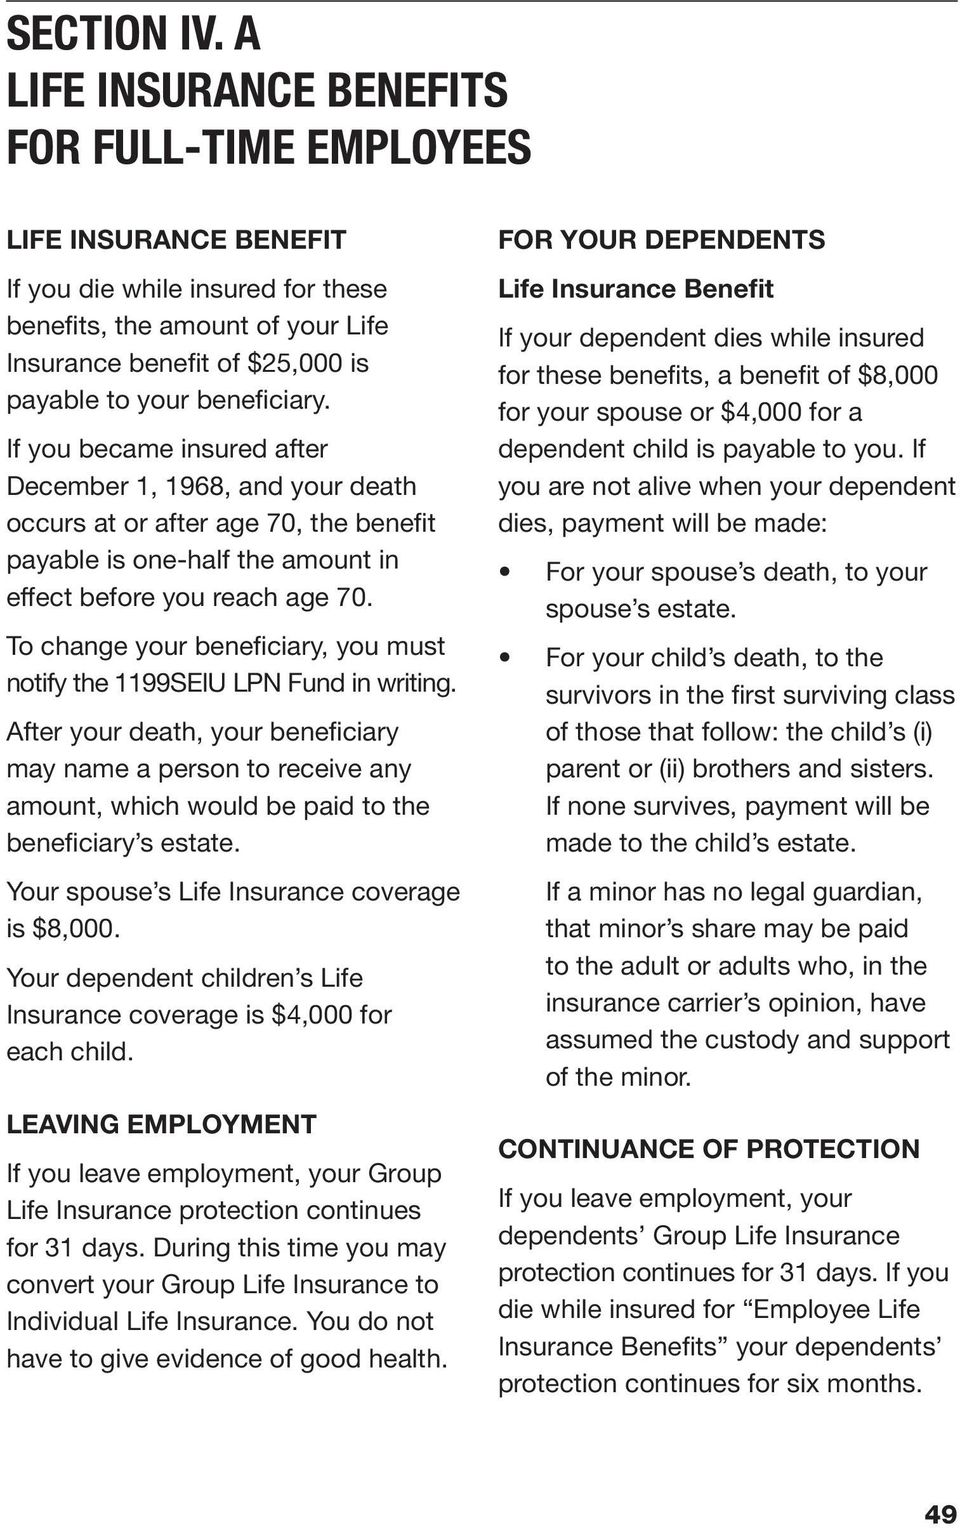 beneficiary. If you became insured after December 1, 1968, and your death occurs at or after age 70, the benefit payable is one-half the amount in effect before you reach age 70.